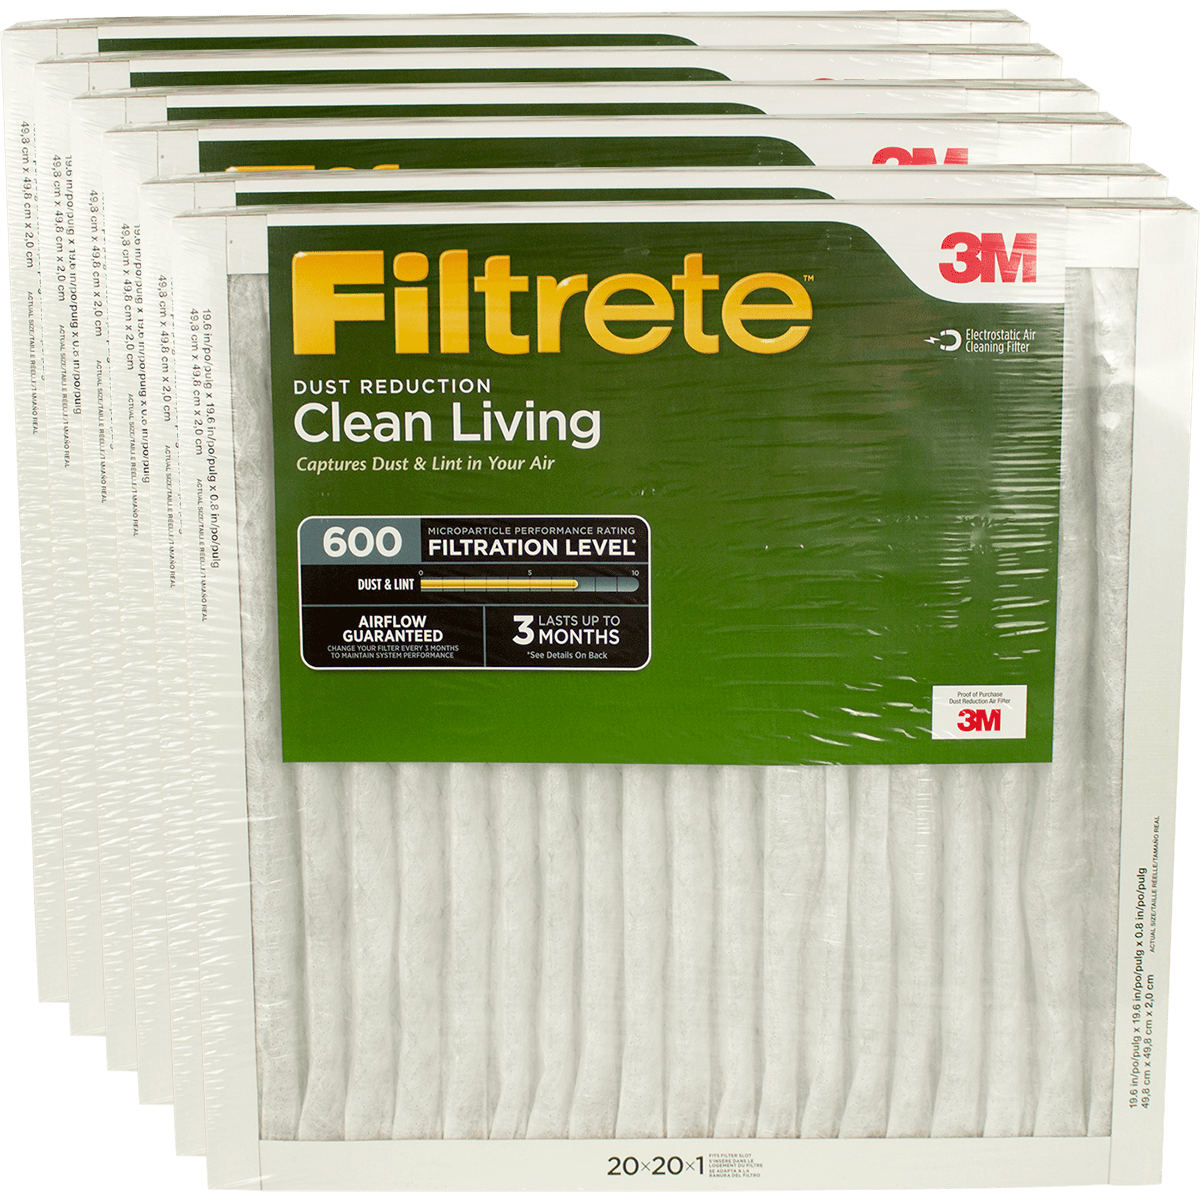 3M Filtrete Clean Living Dust Reduction MPR 600 Air Filters, 1-Inch 6-Pack fi5332